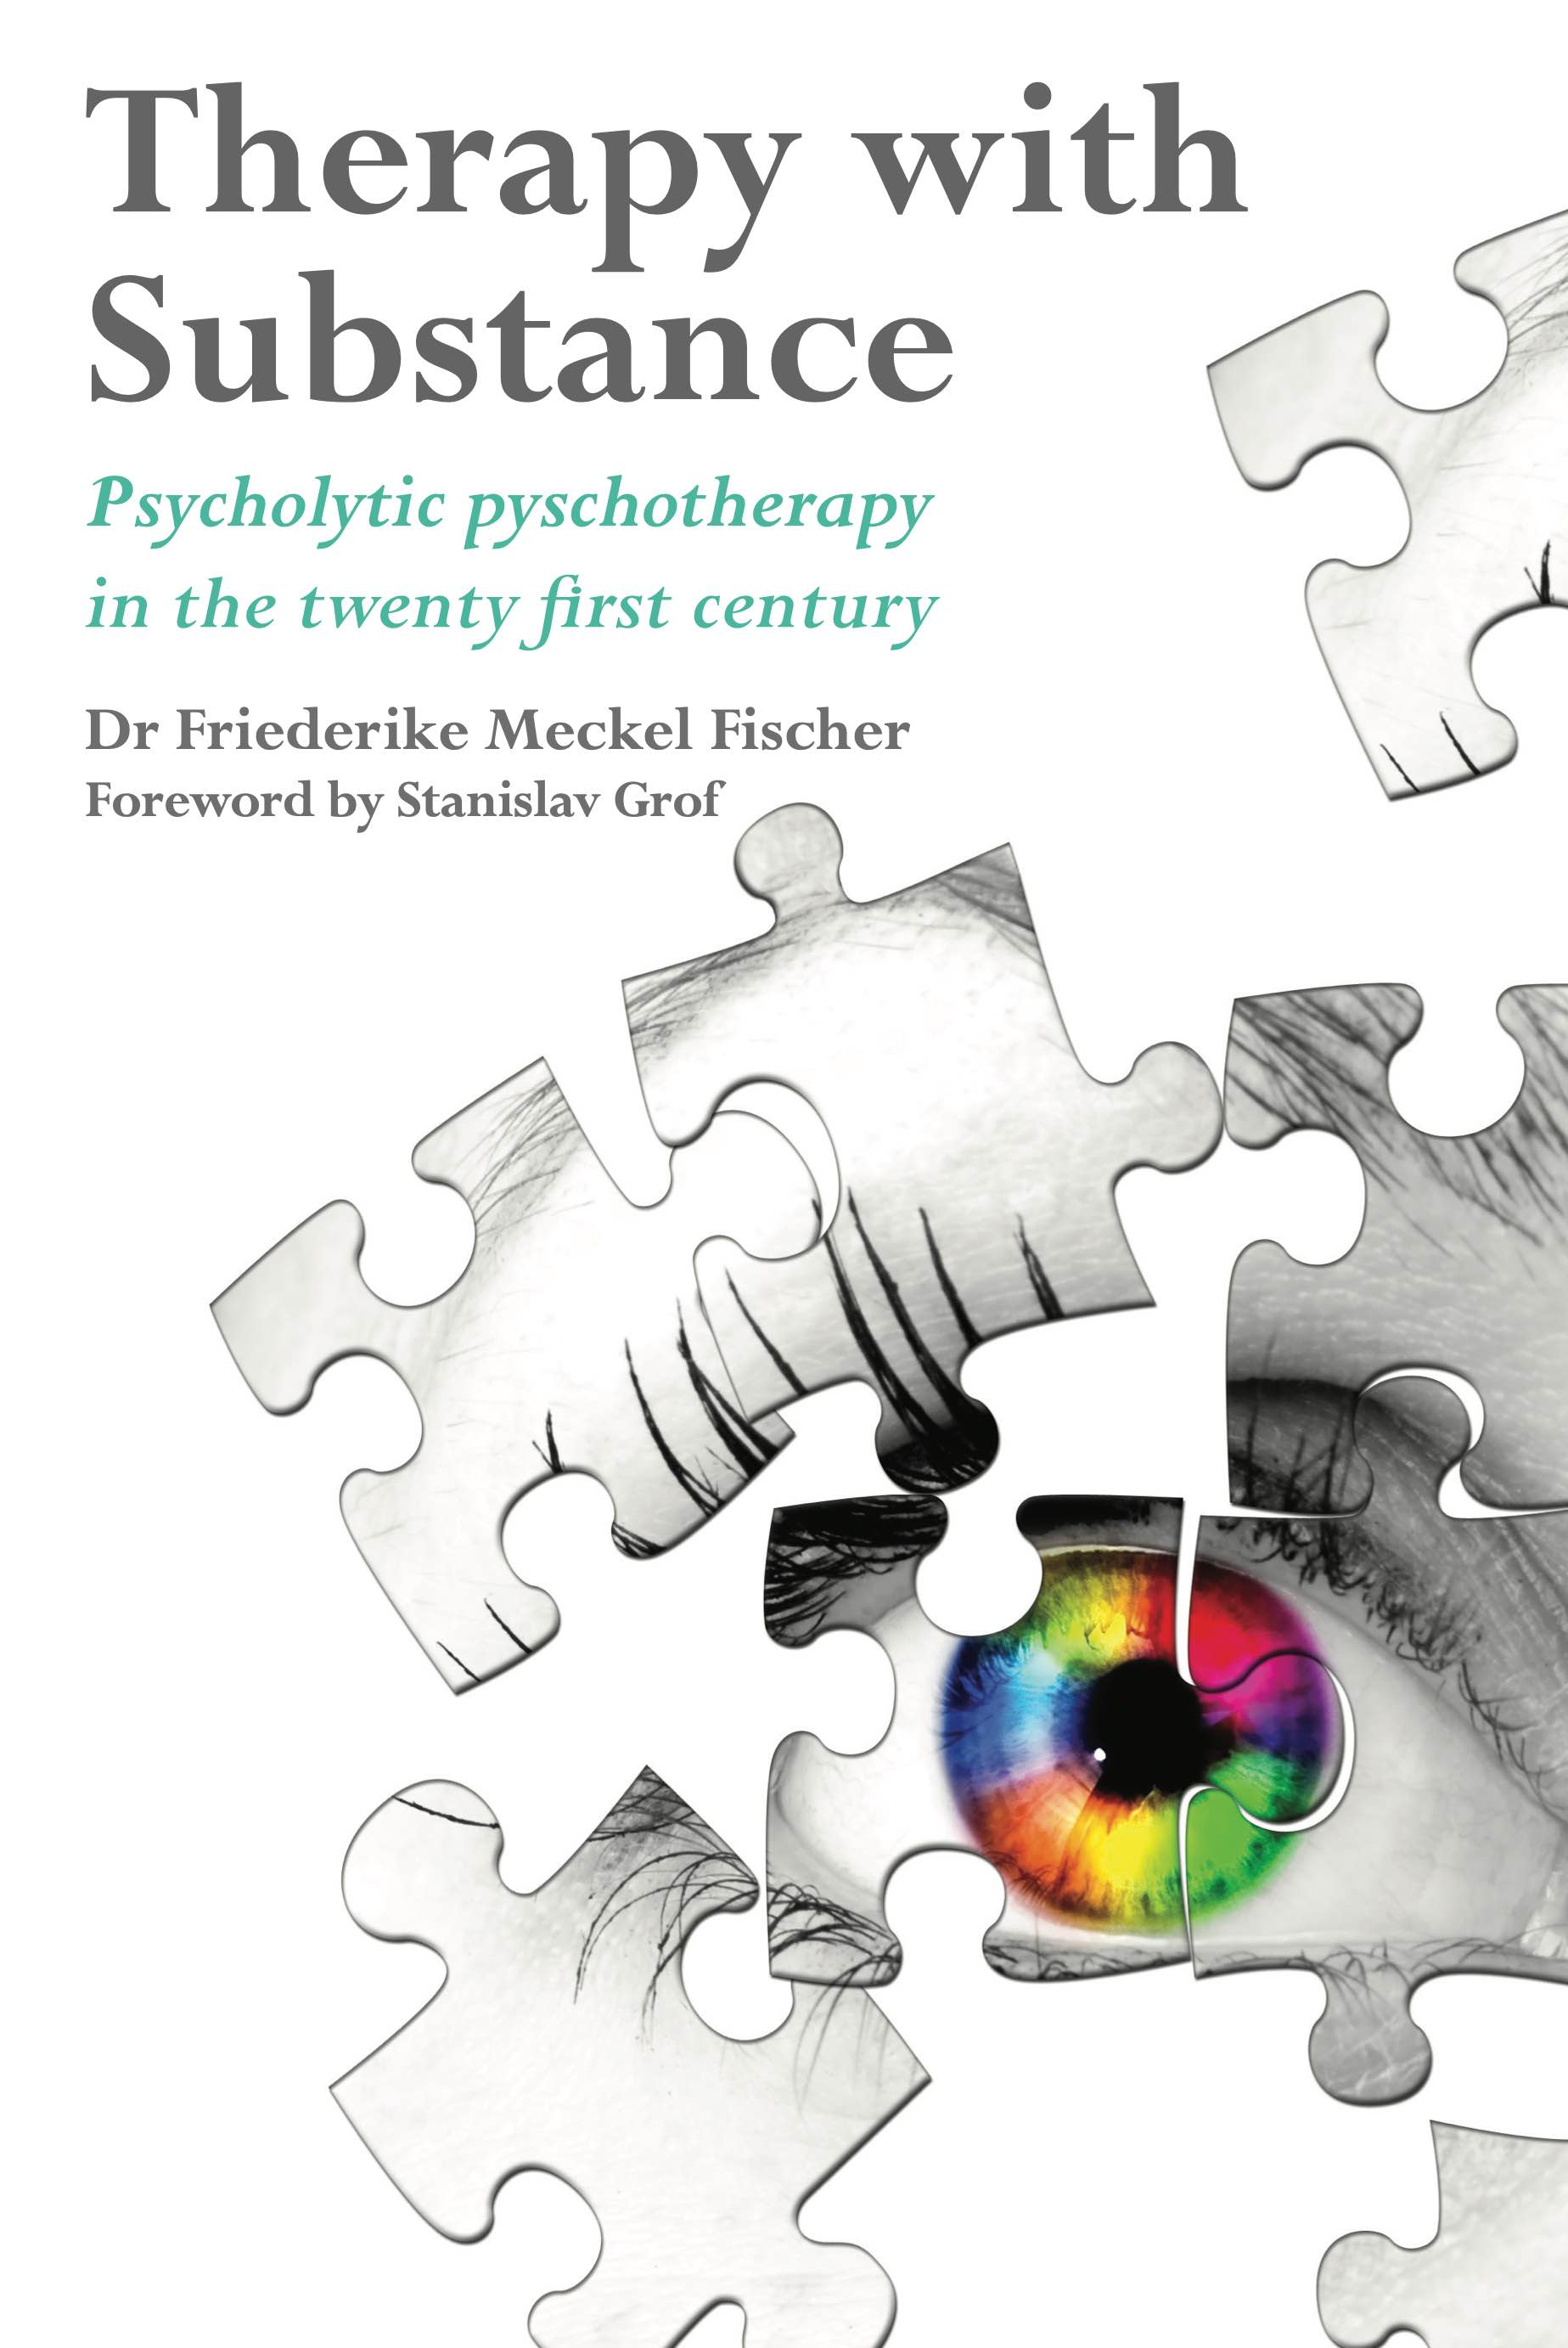 Therapy with Substance: Psycholytic Psychotherapy in the Twenty-First Century